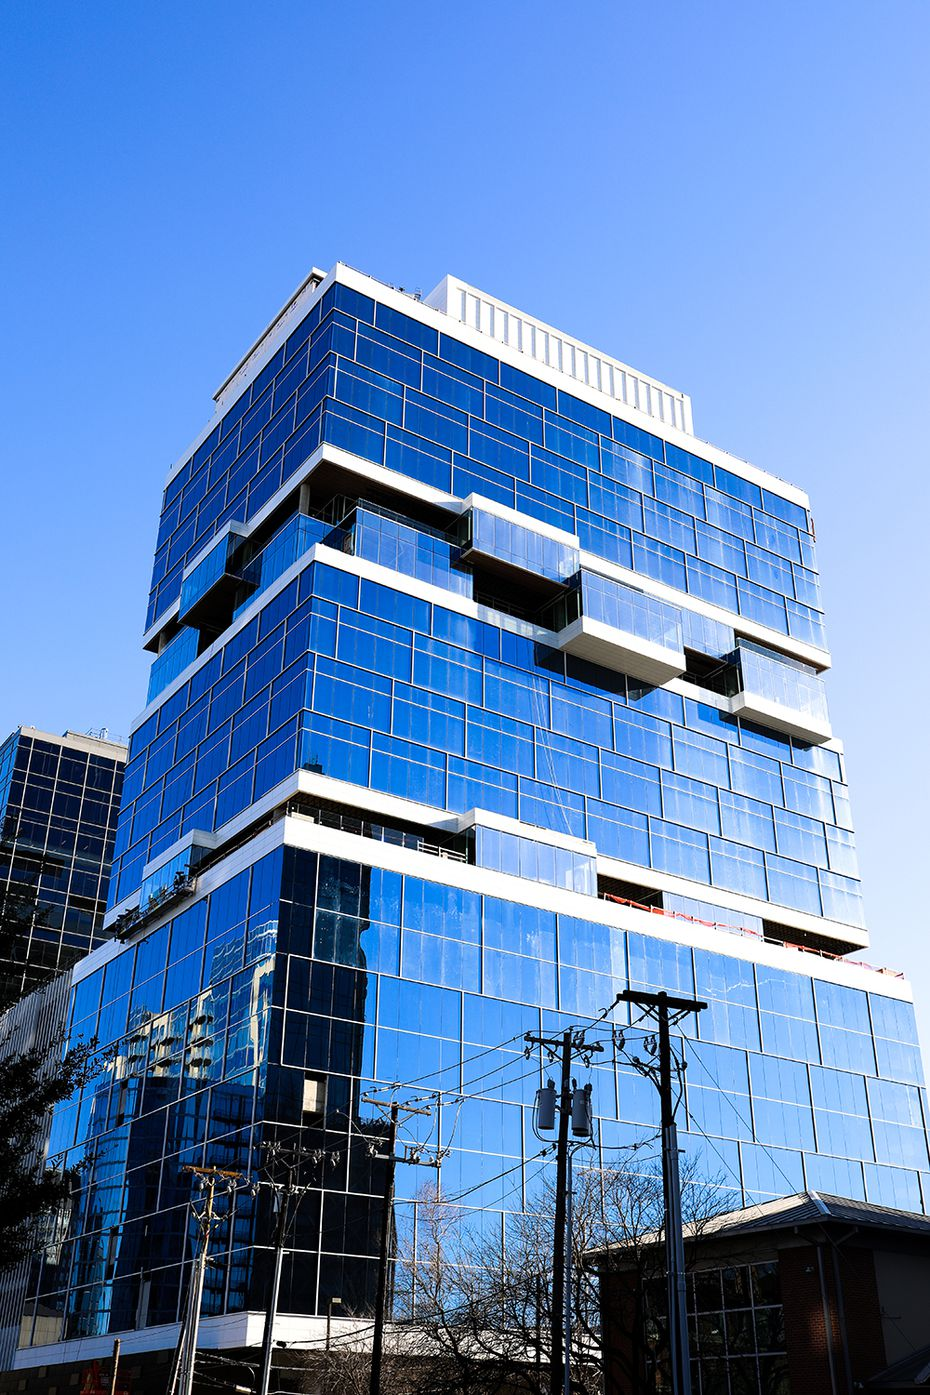 Harwood International's newest tower, Harwood No. 10, is about 65% leased.